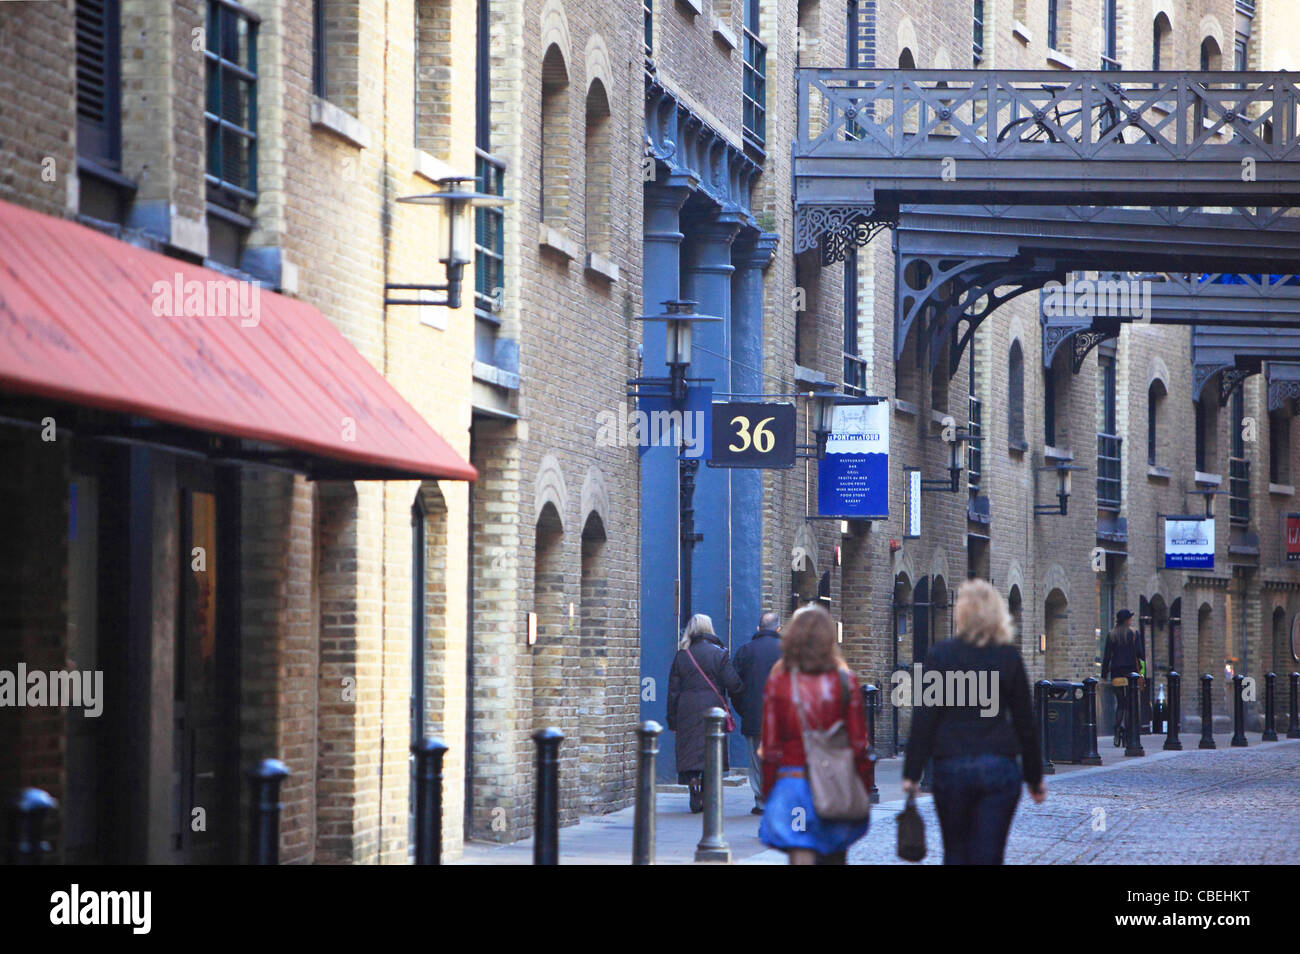 The exclusive area of Shad Thames, Southwark, London, UK - Stock Image